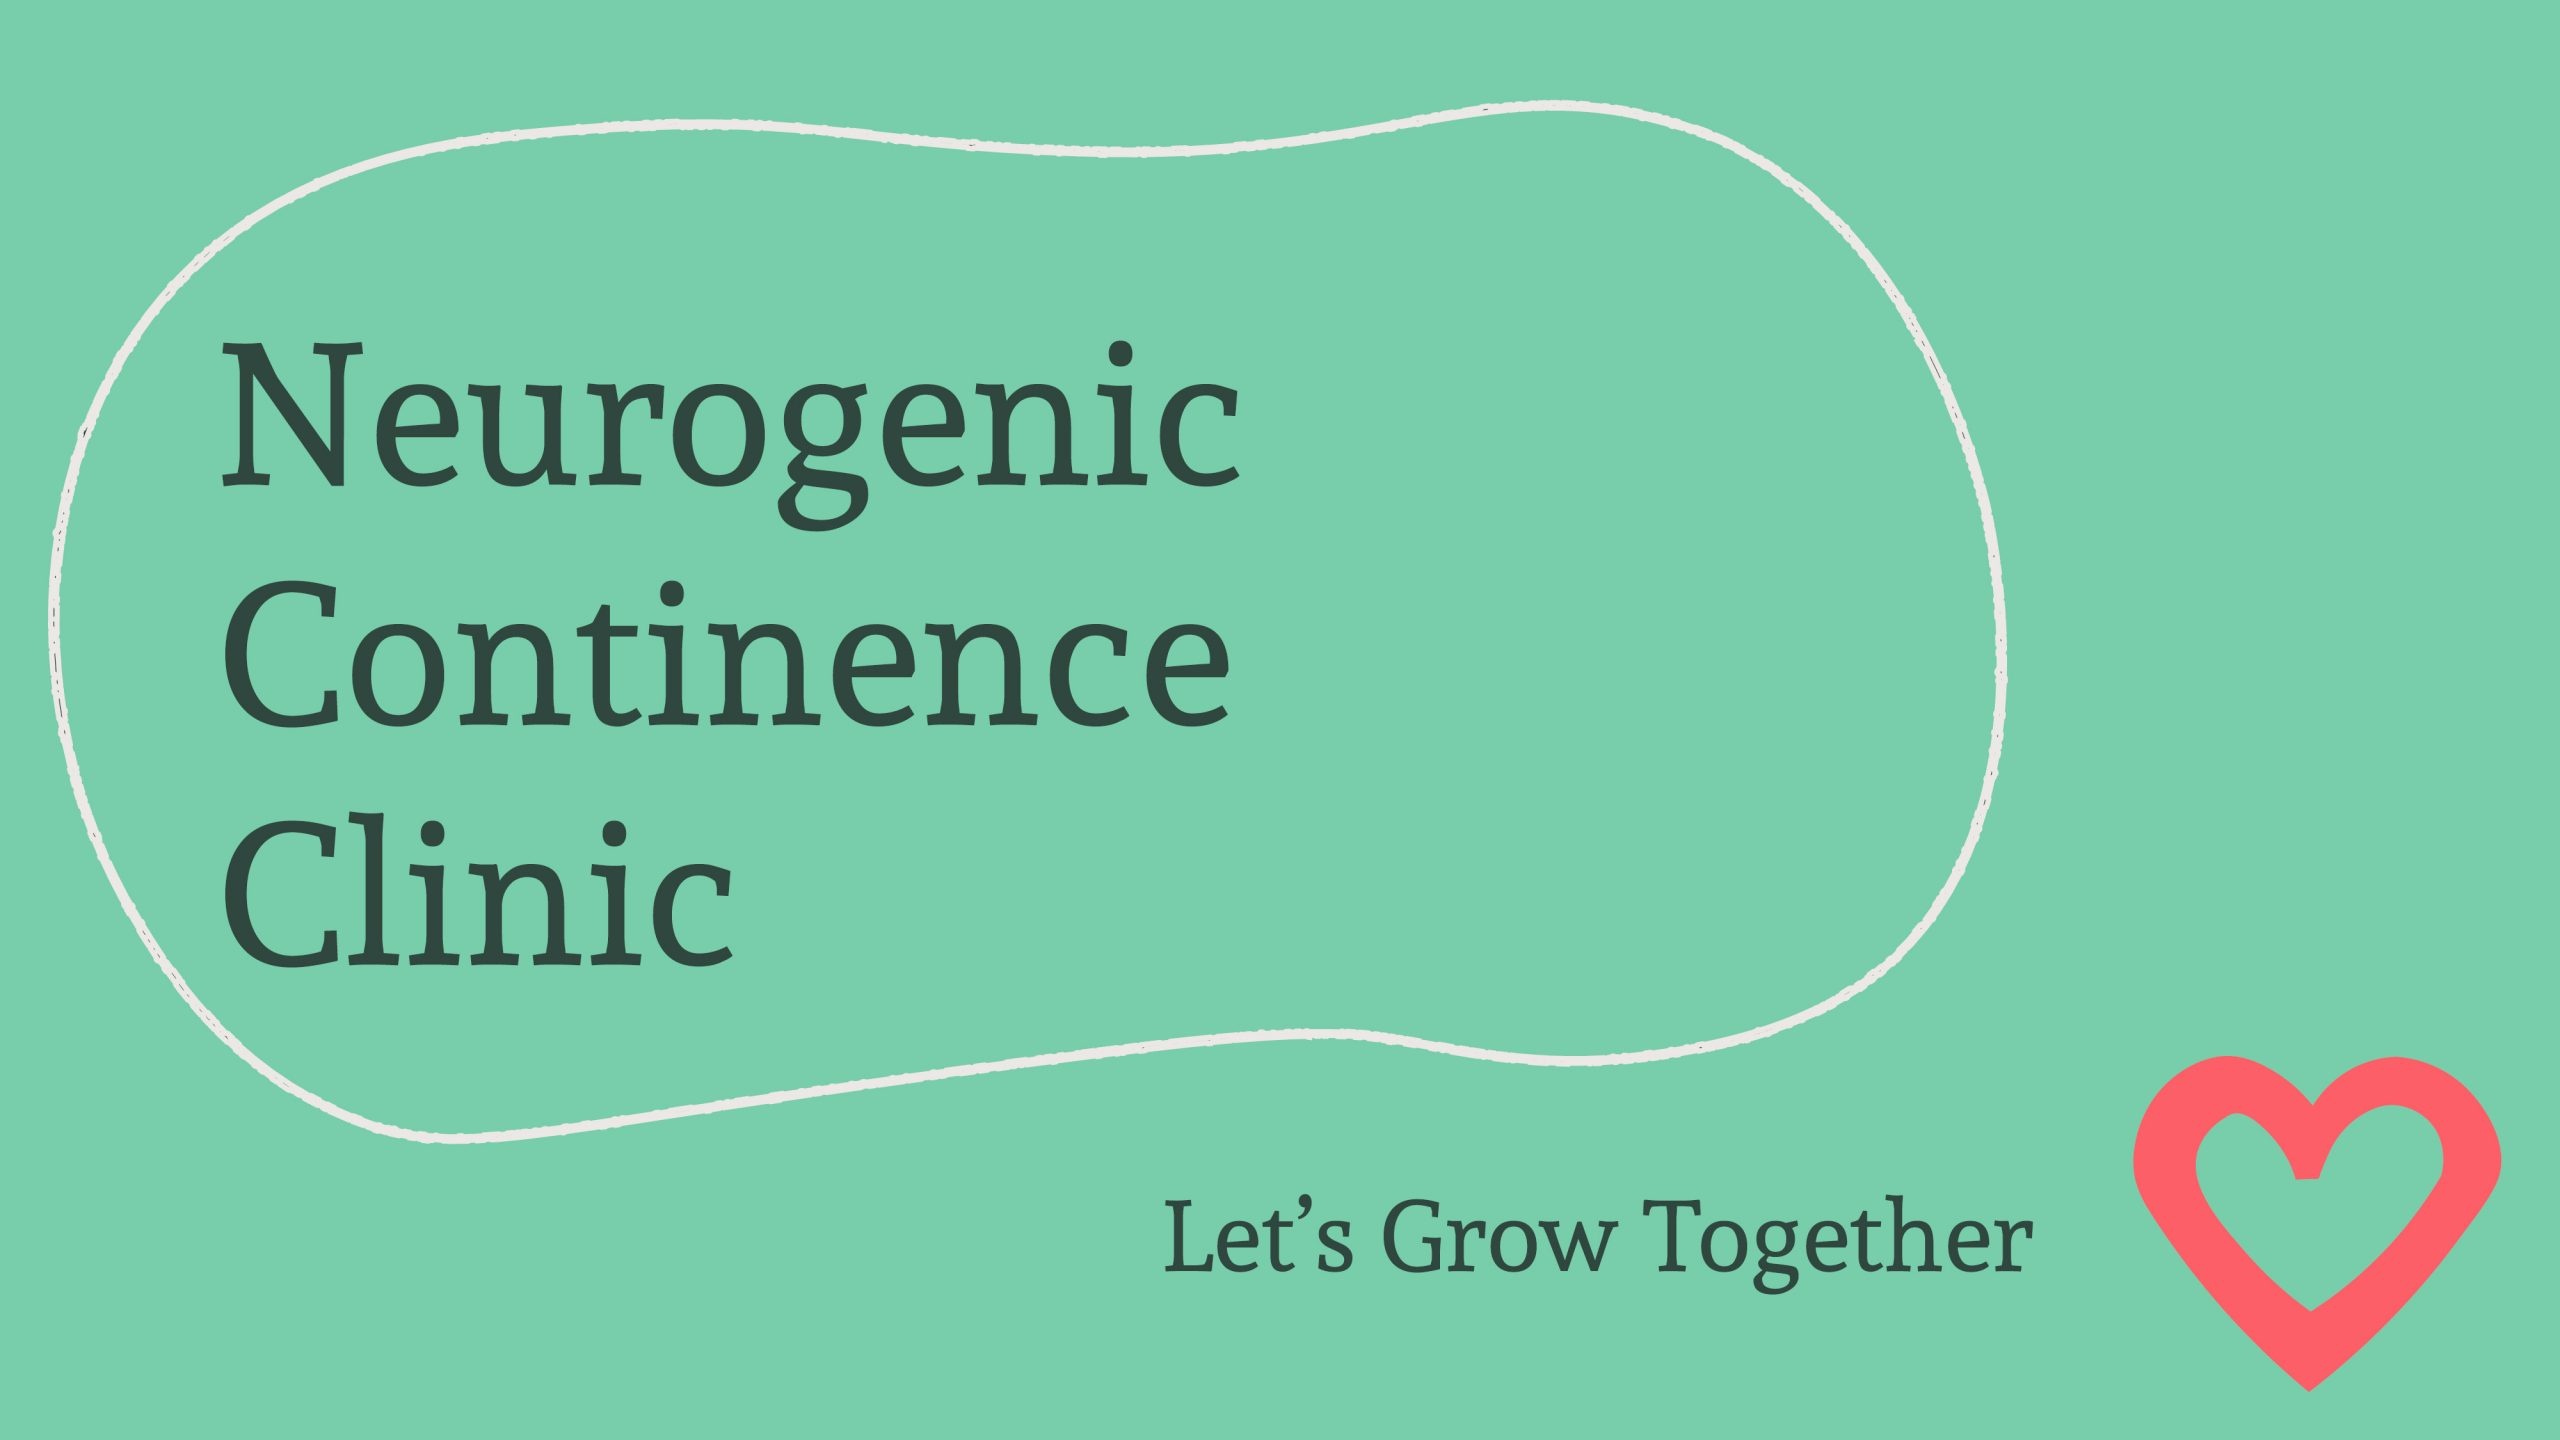 """Light Green Background with Dark Green Text Saying """"Neurogenic Continence Clinic"""""""